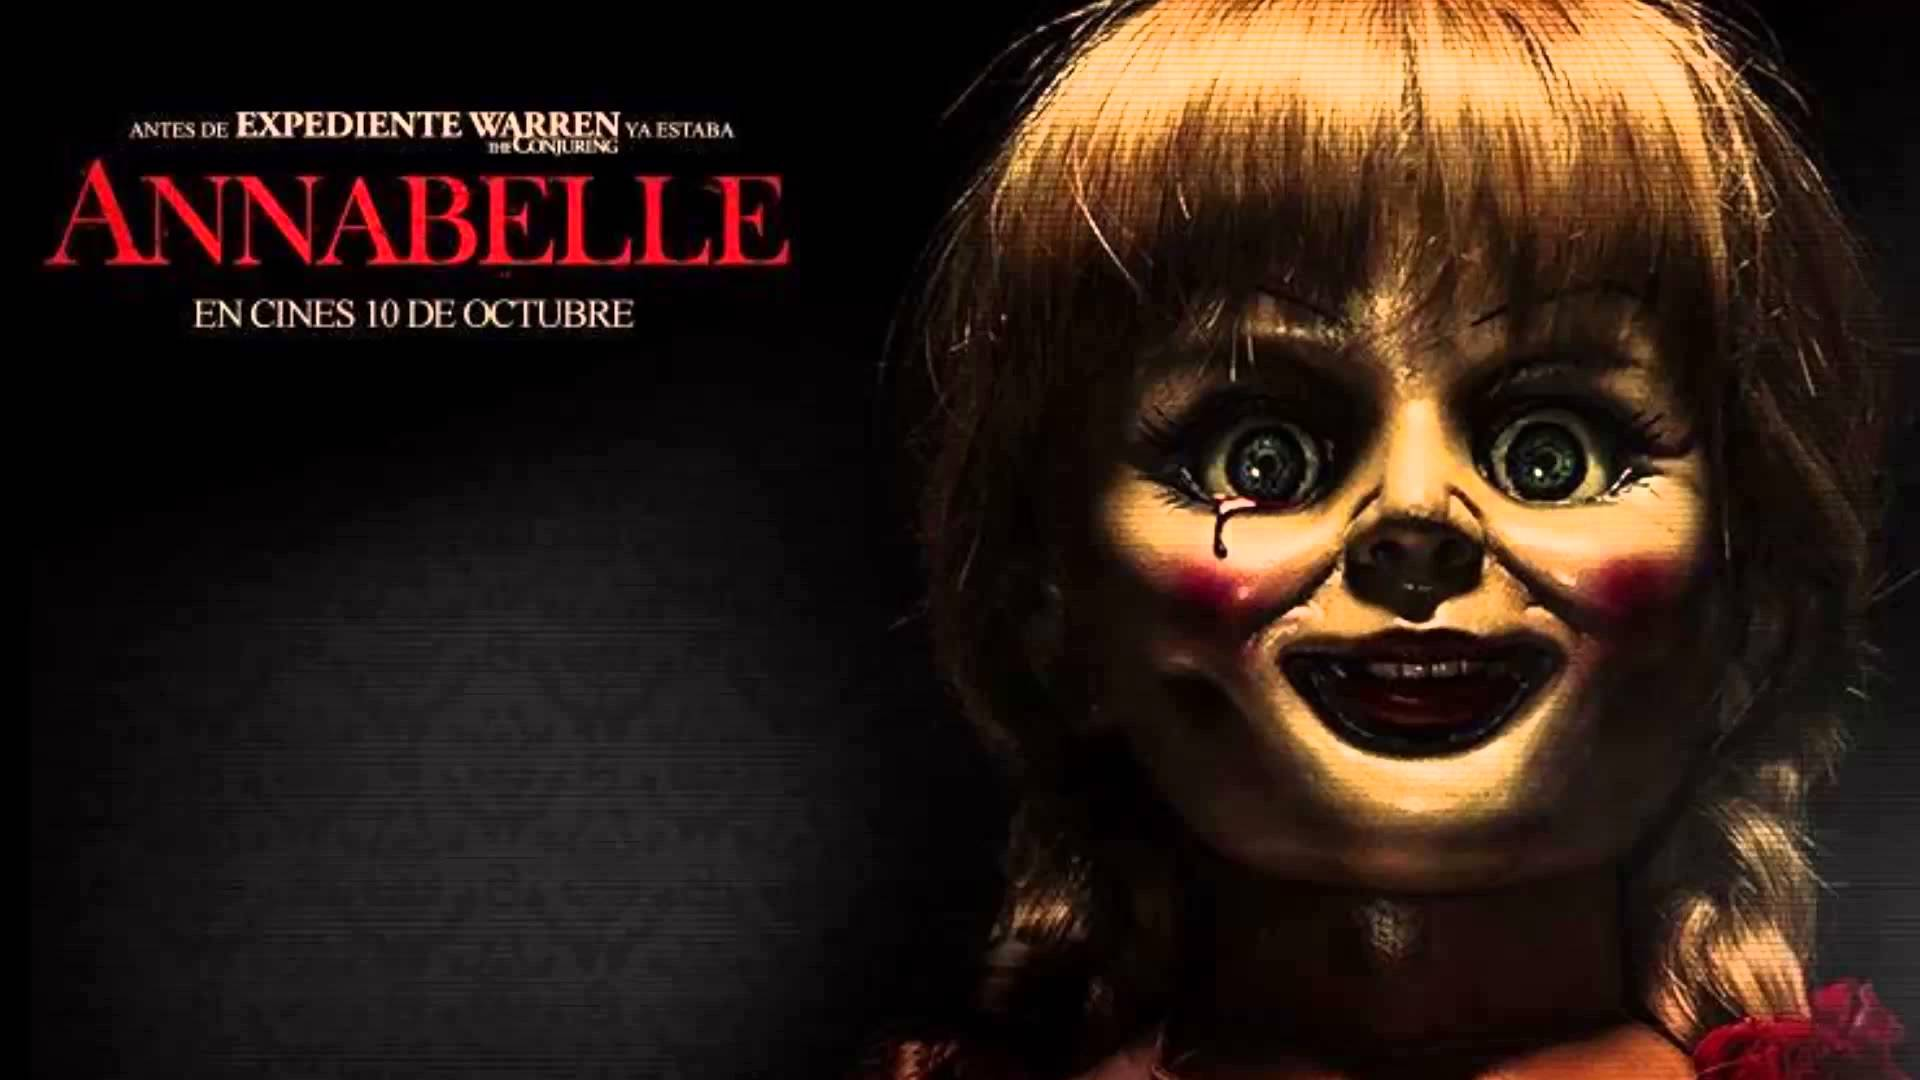 annabelle doll horror wallpaper hd